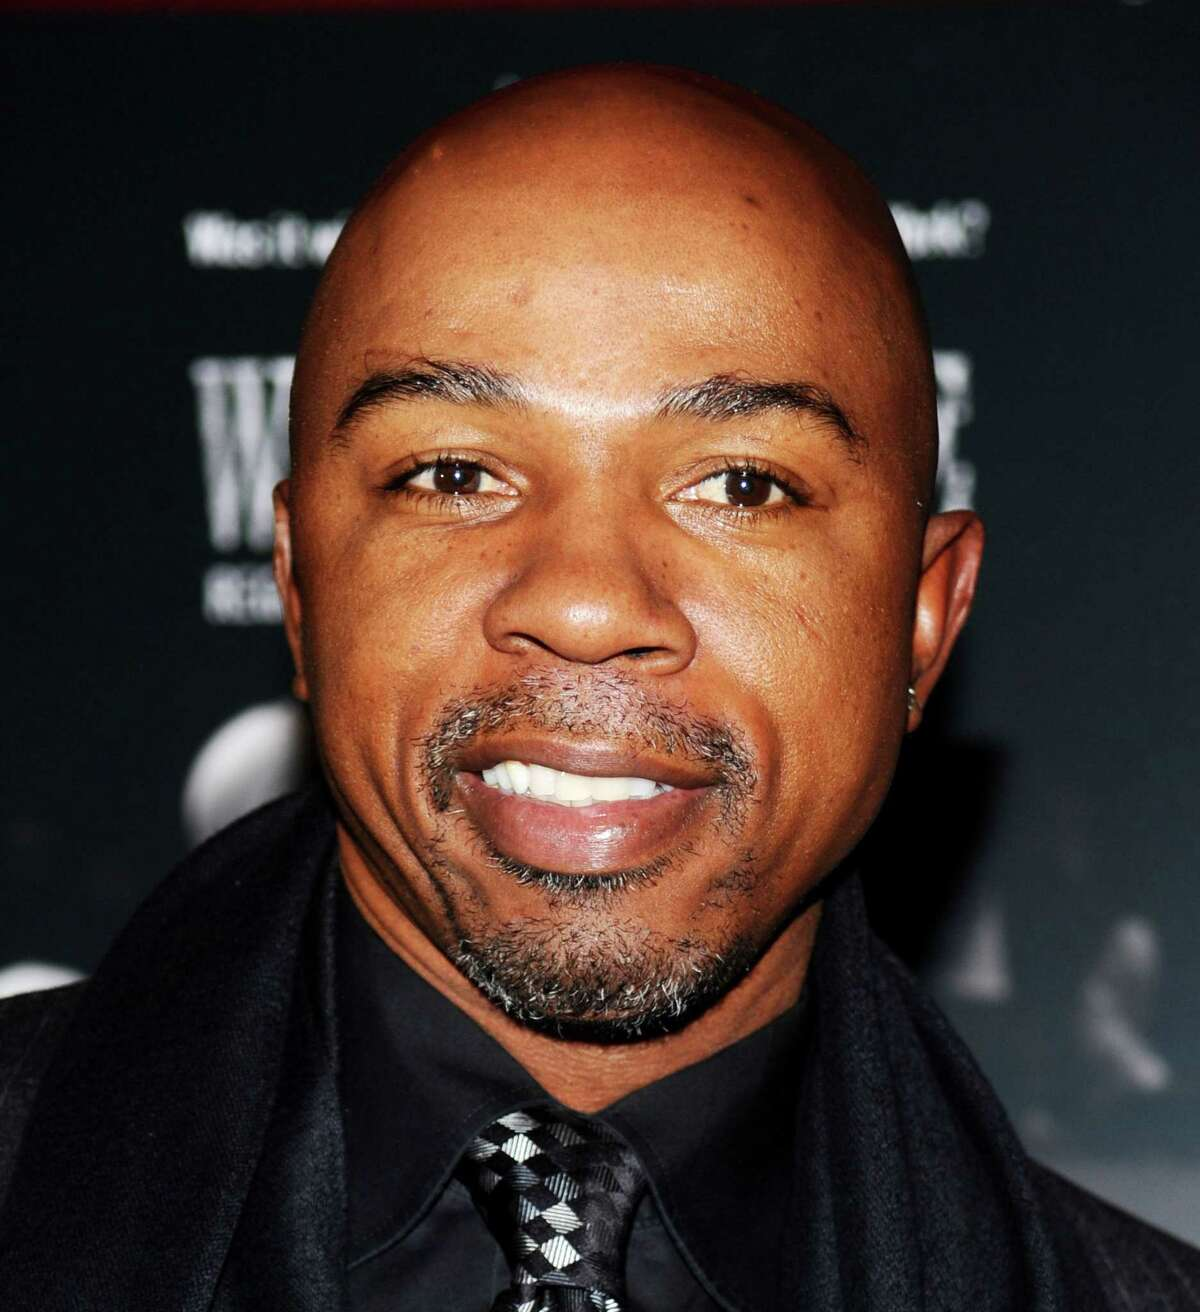 Greg Anthony, an NBA and college basketball broadcaster, was arrested for soliciting prostitution in Washington on Jan. 16 according to D.C. Police.